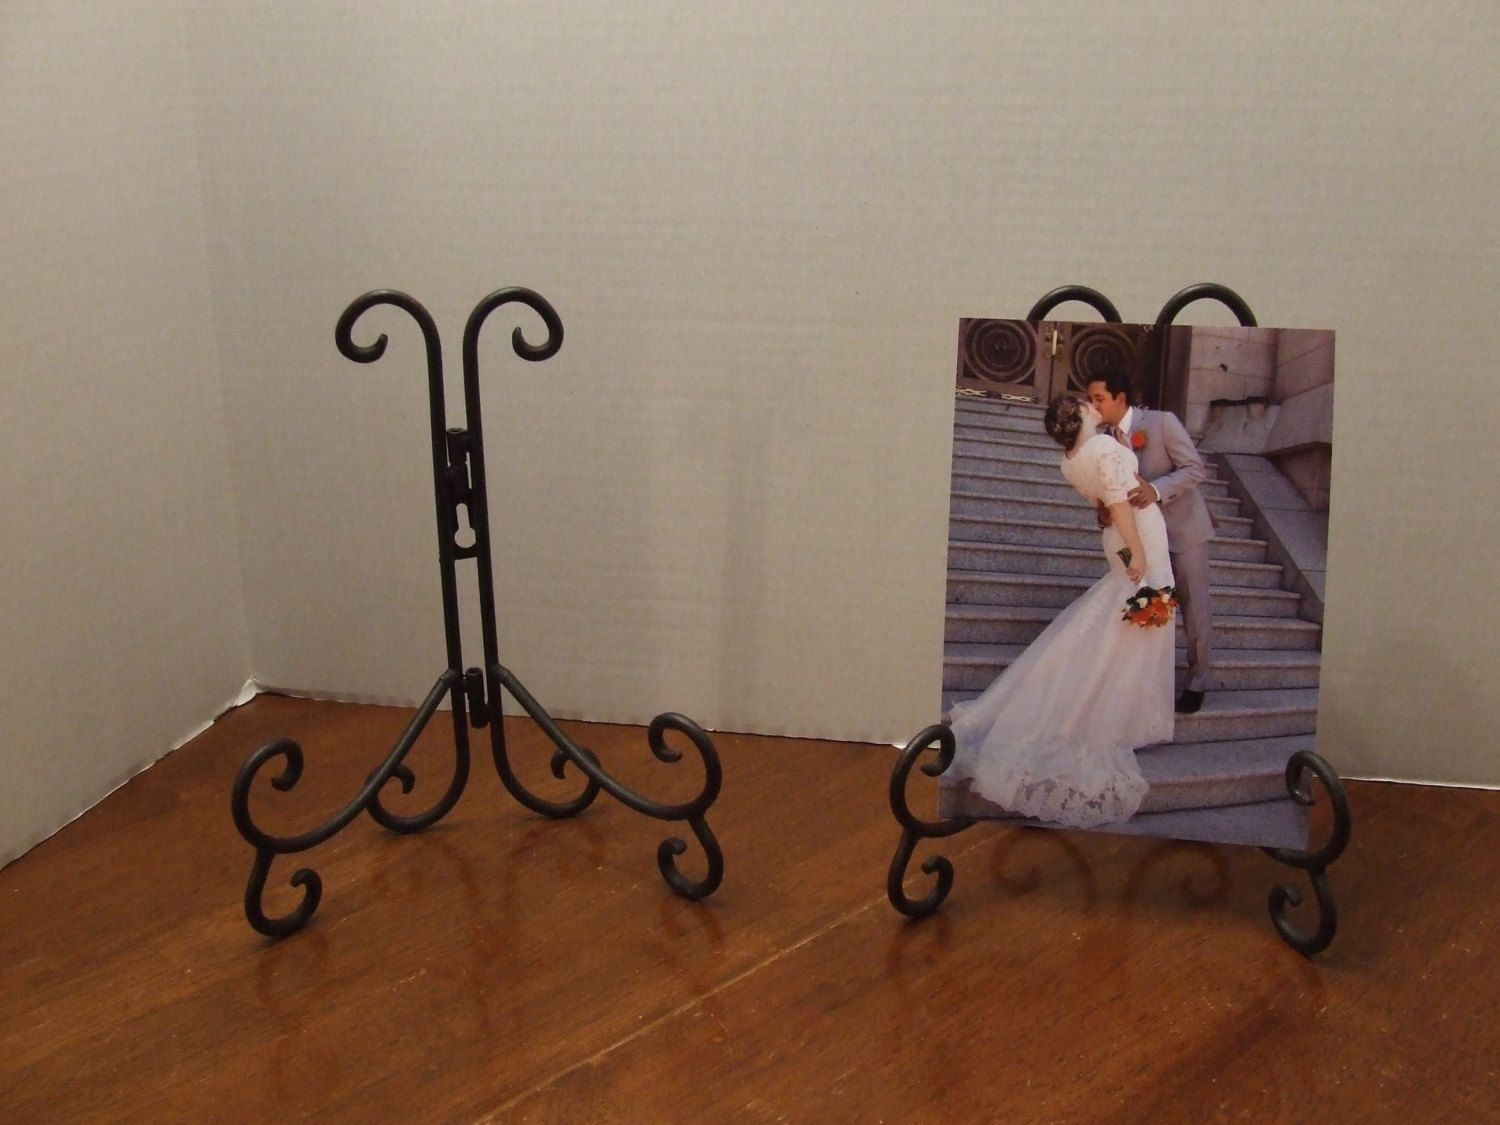 Wall Plate Holder Picture Holder Metal Recipe Book Holder Letter Holder Wall Mount or Table Wall Plate Black Wrought Iron Hanger Gift & Wall Plate Holder Picture Holder Metal Recipe Book Holder Letter ...